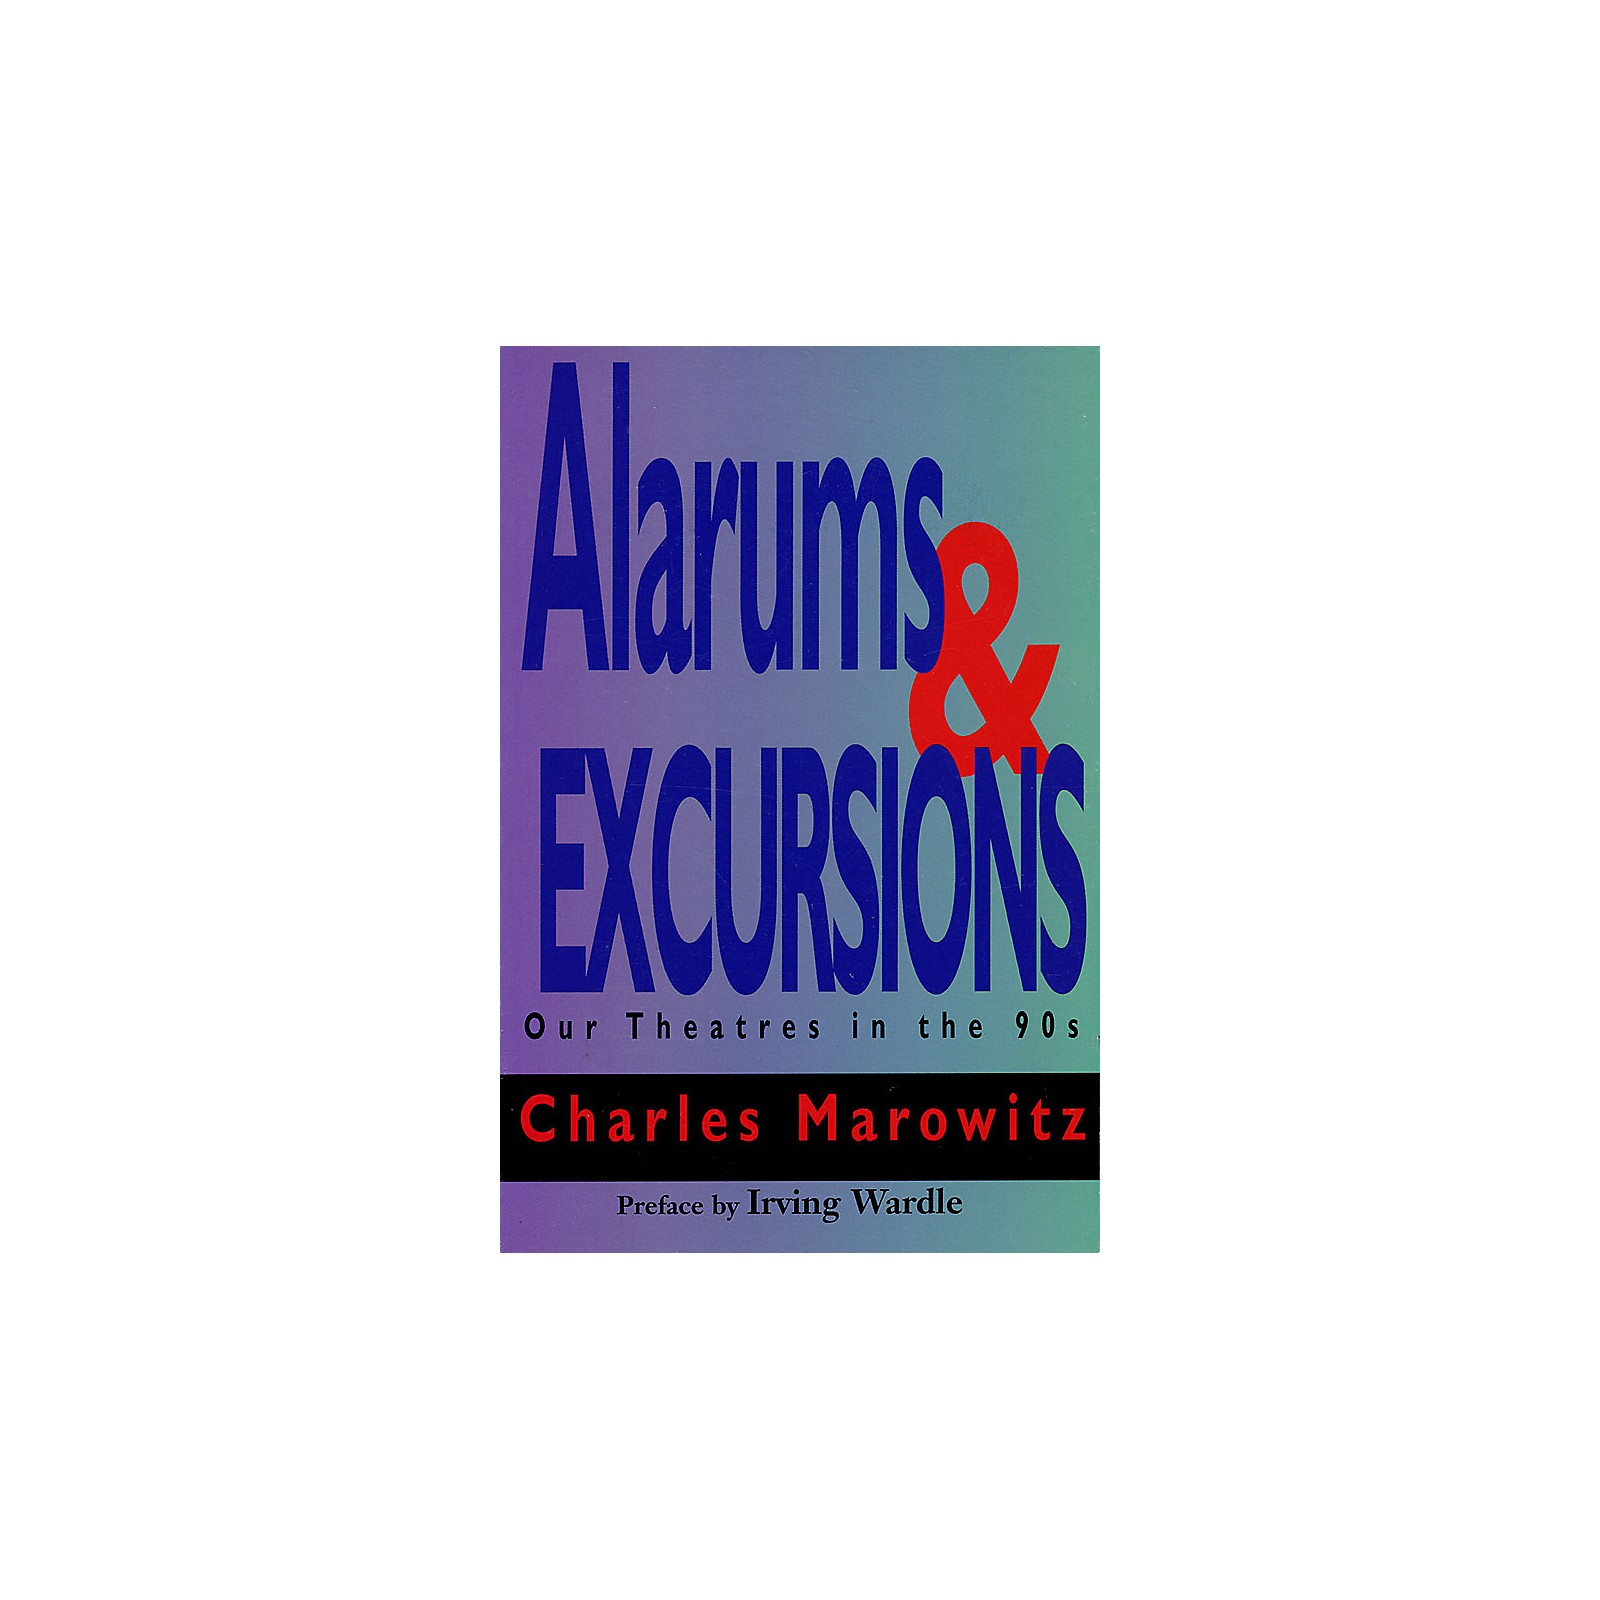 Applause Books Alarums & Excursions (Our Theatres in the 90s) Applause Books Series Written by Charles Marowitz